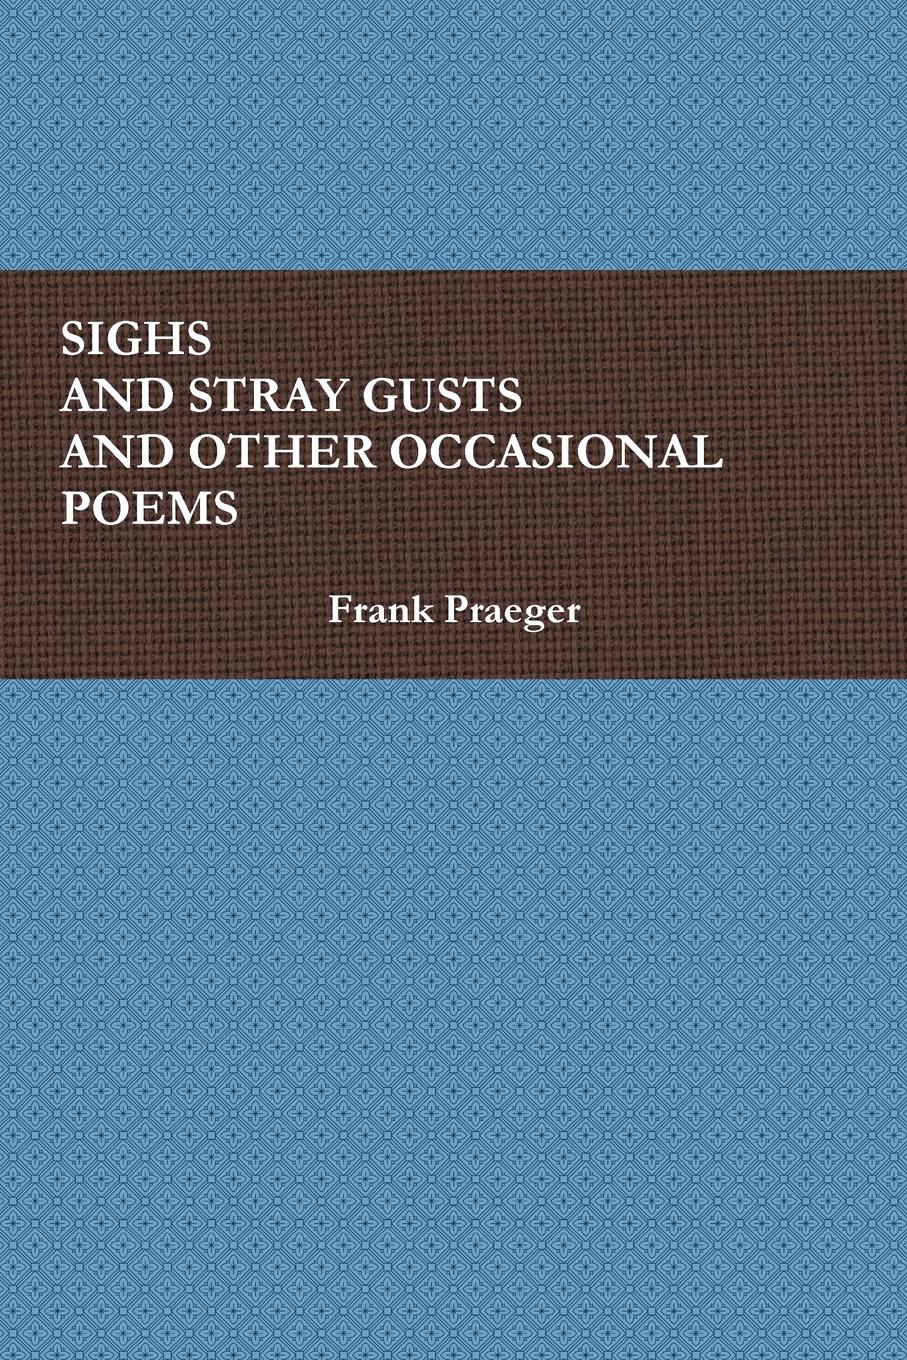 цена Frank Praeger SIGHS AND STRAY GUSTS AND OTHER OCCASIONAL POEMS онлайн в 2017 году